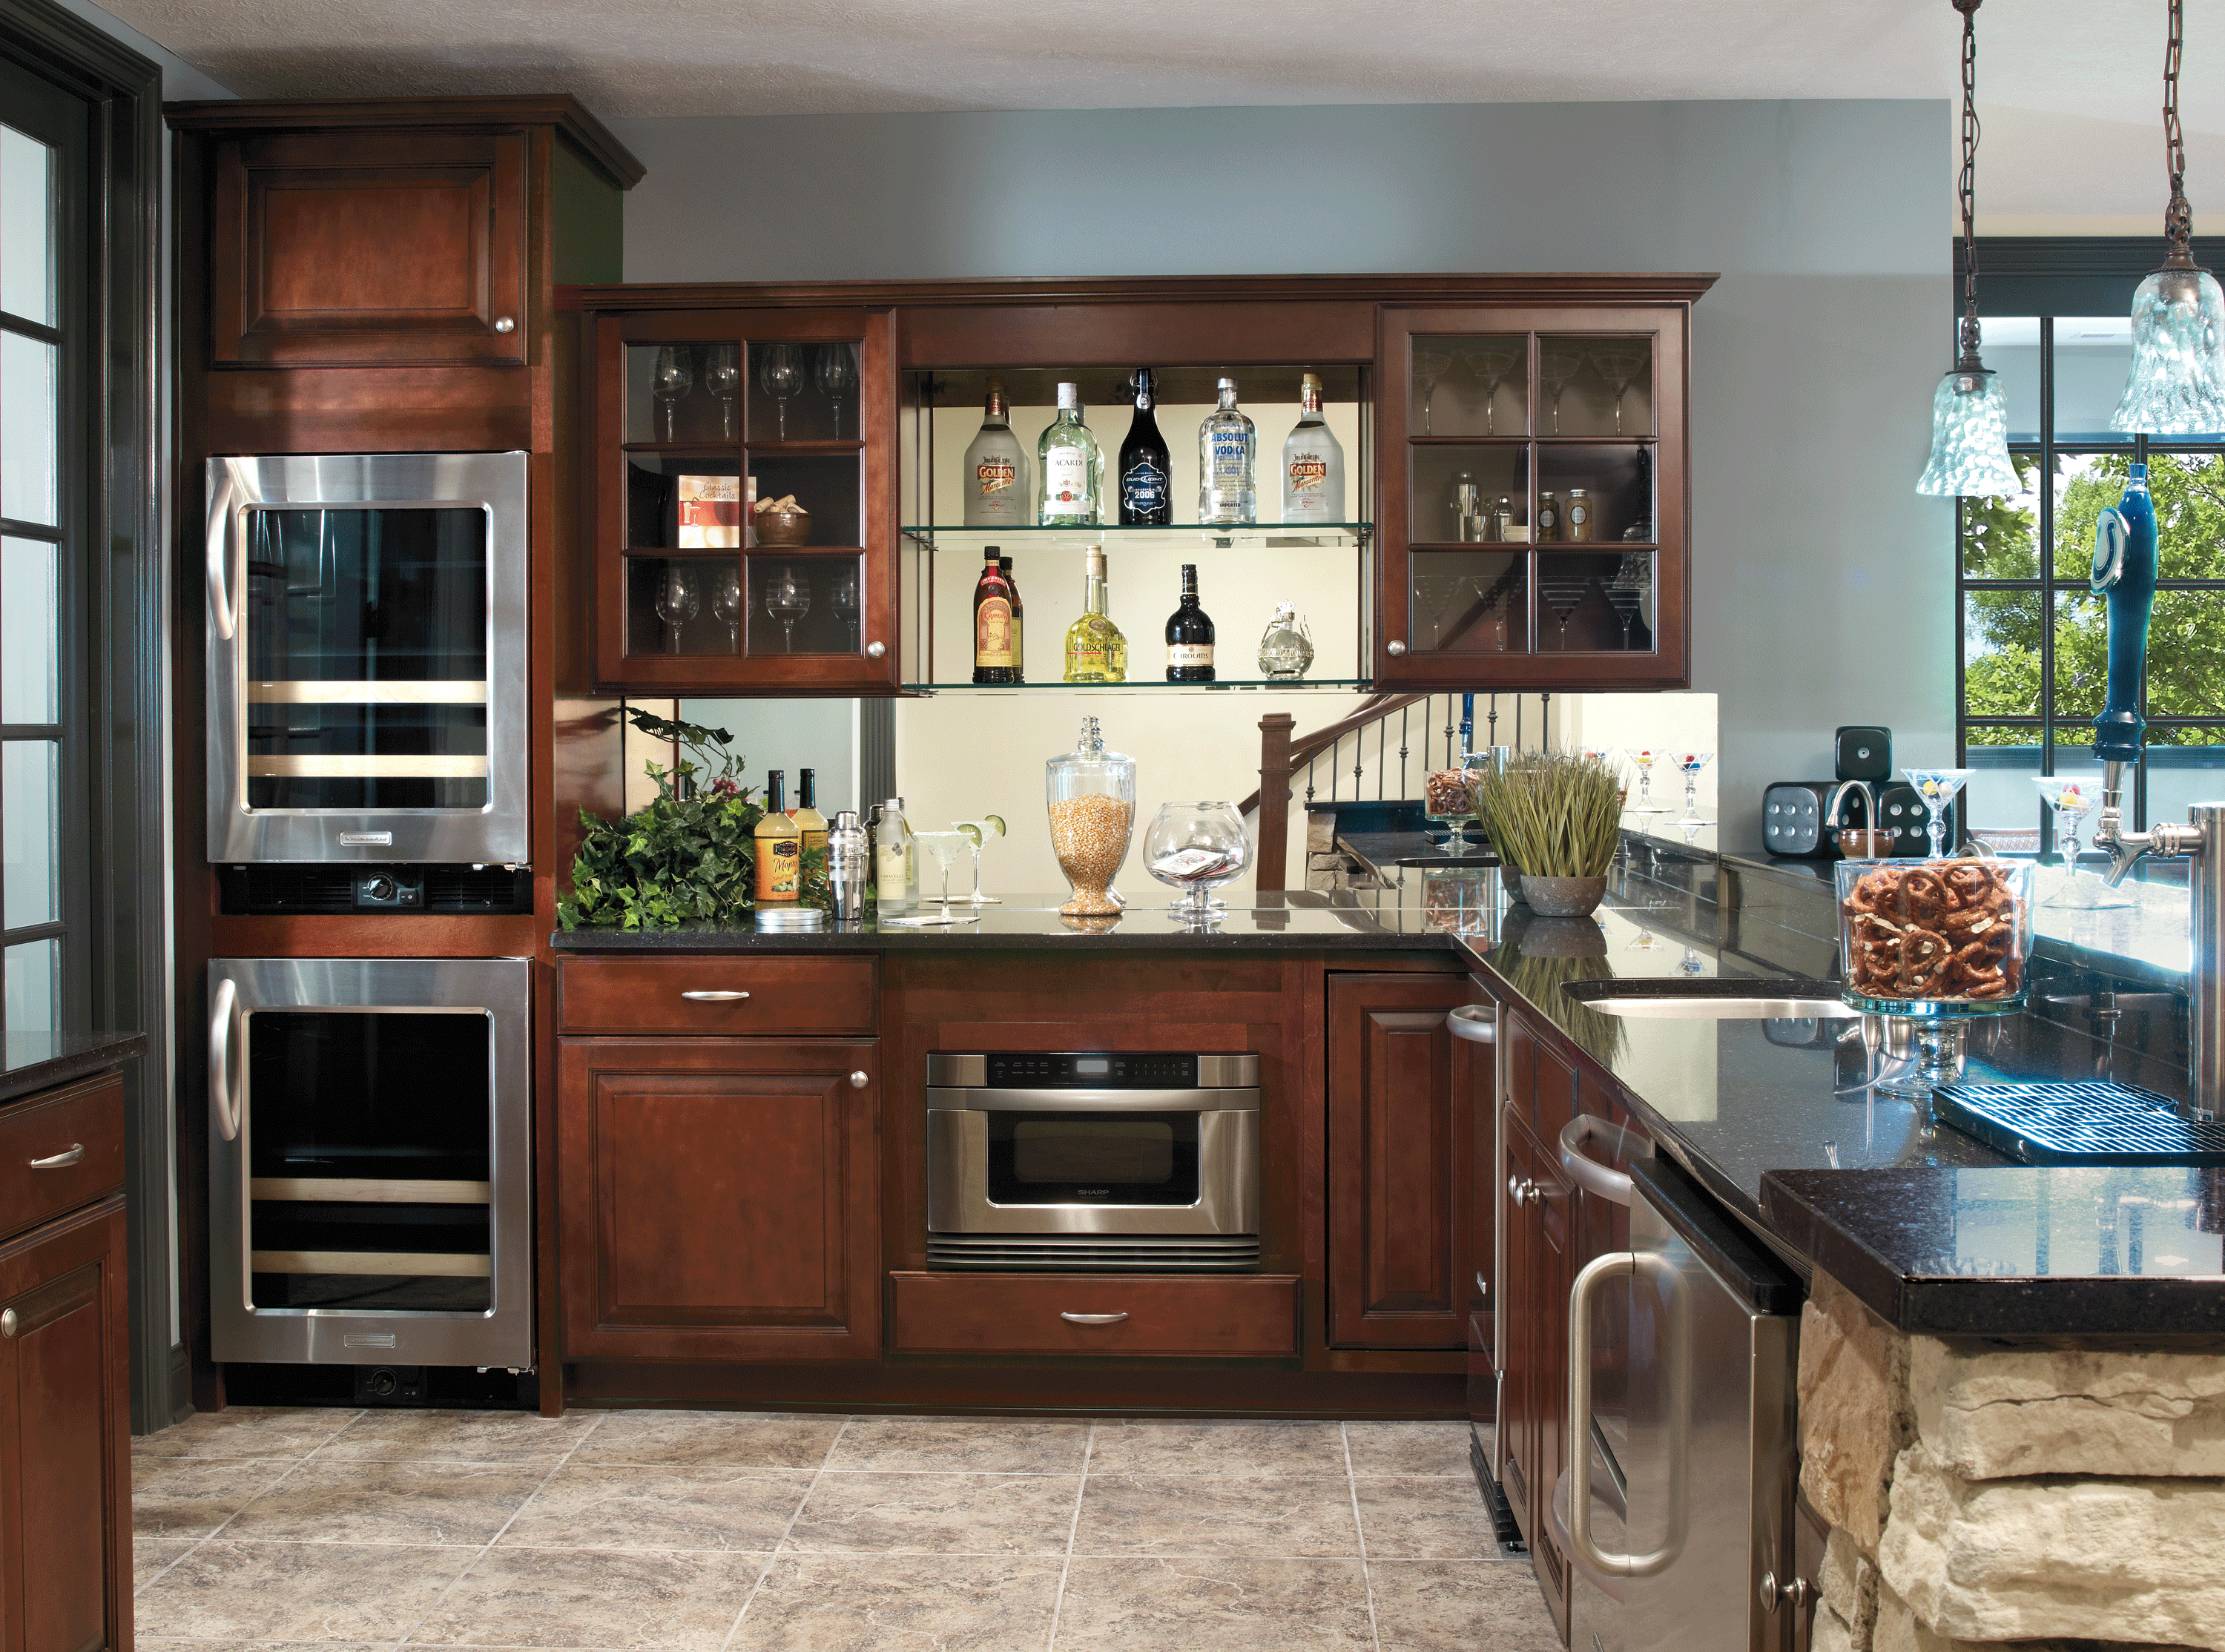 The Elegant Profiled Design Of The Eastland Raised Panel Cabinet Door Adds A Sculptured Element To The Smooth Kitchen Remodel Kitchen Design Kitchen Cabinets